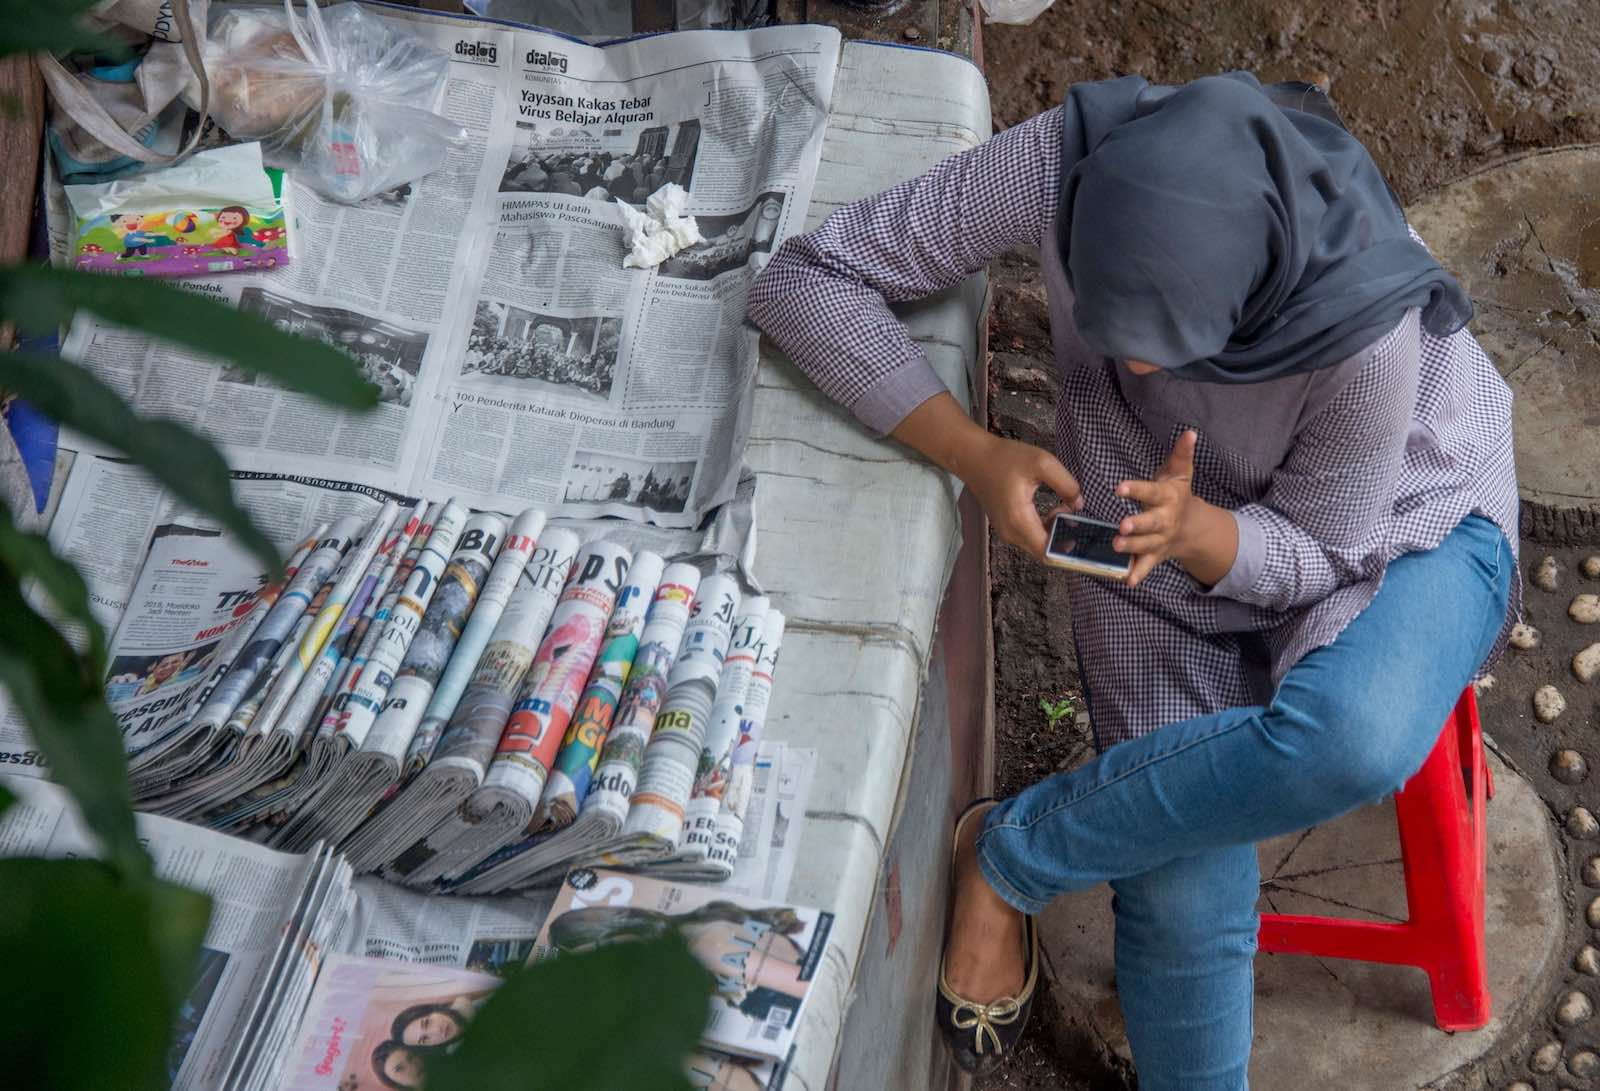 A newspaper vendor in Jakarta, Indonesia (Bay Ismoyo/AFP via Getty Images)